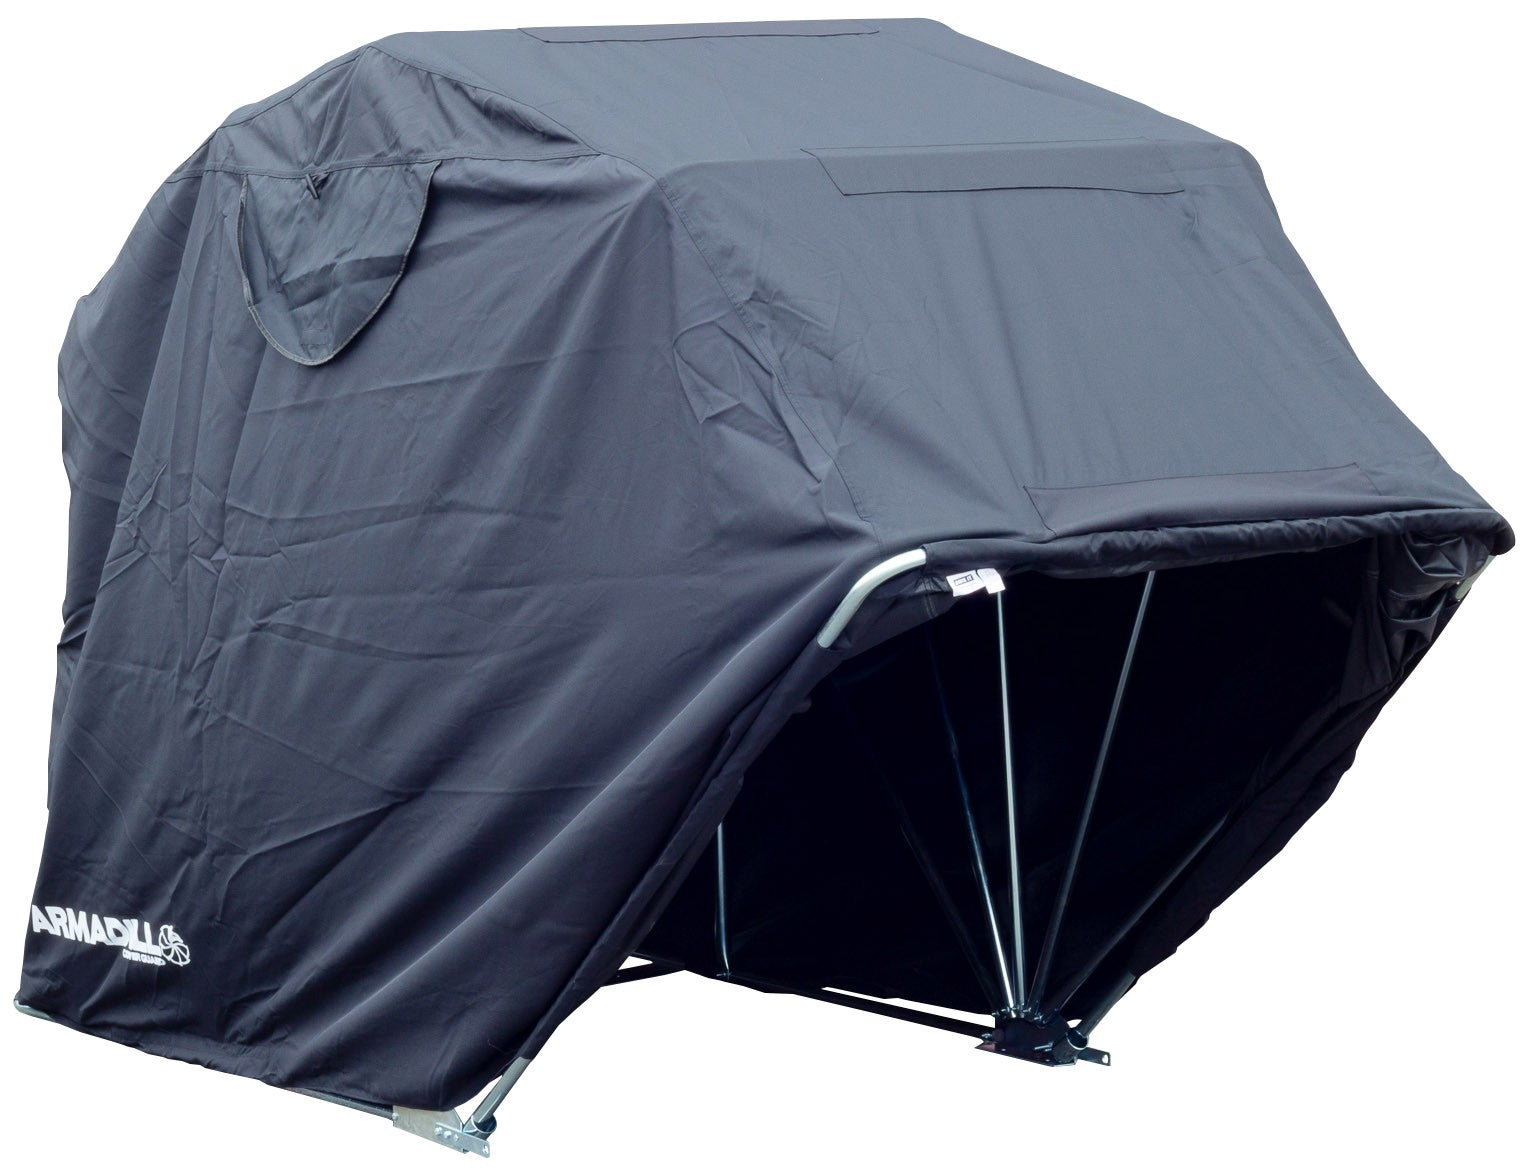 Mobility Scooter Outdoor Garage Shelter - Waterproof Windproof